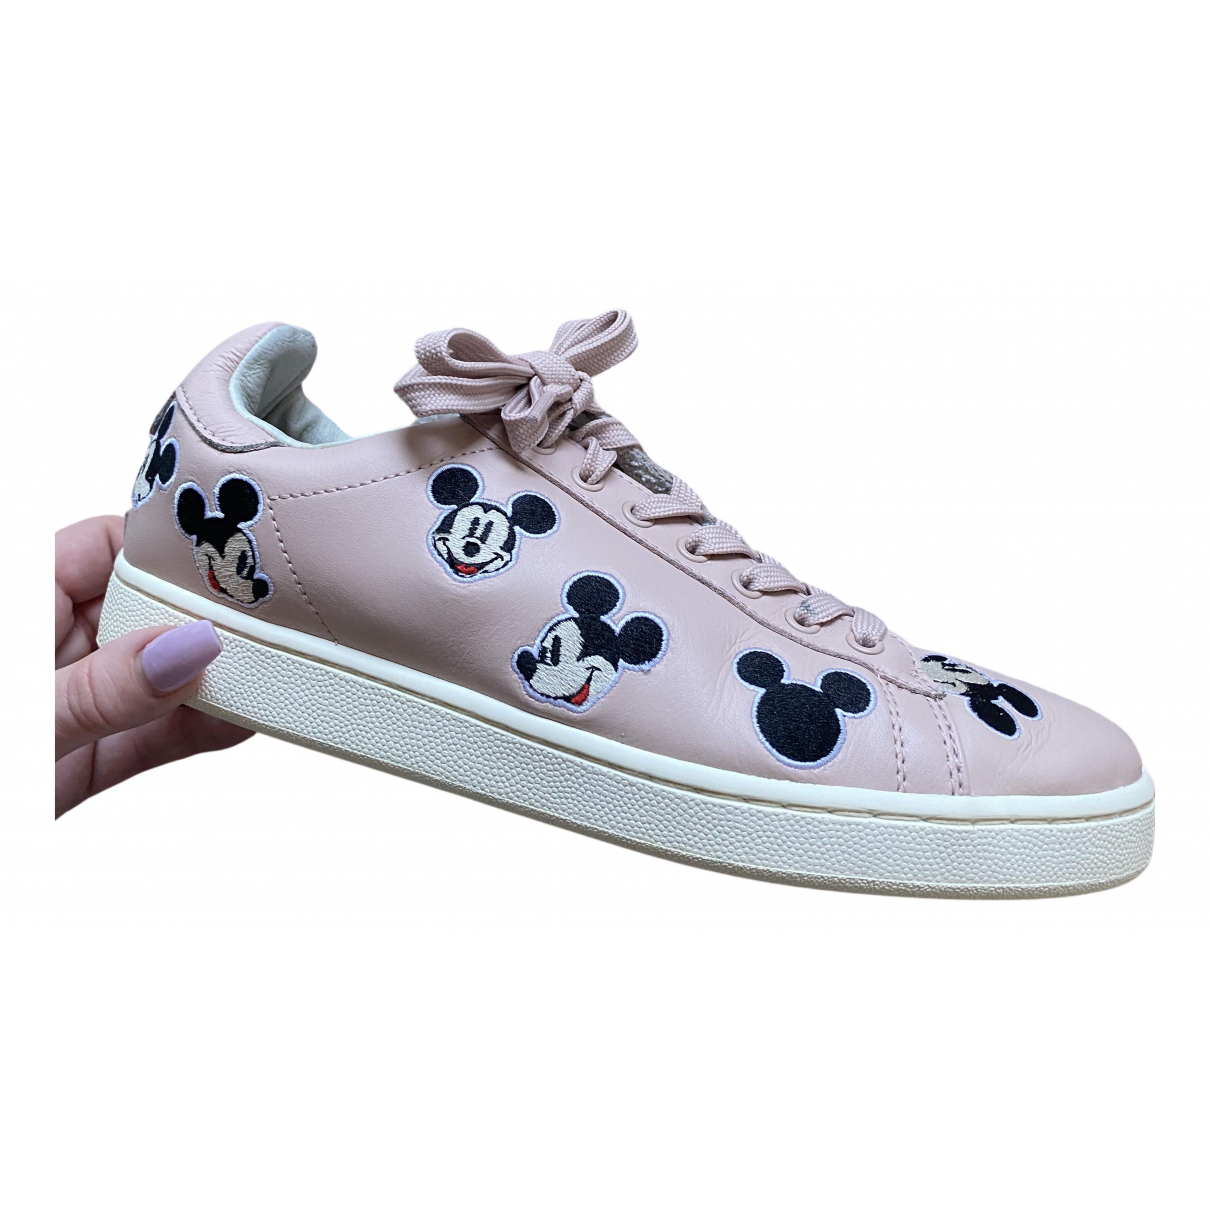 Moa Master Of Arts N Pink Leather Trainers for Women 7.5 UK